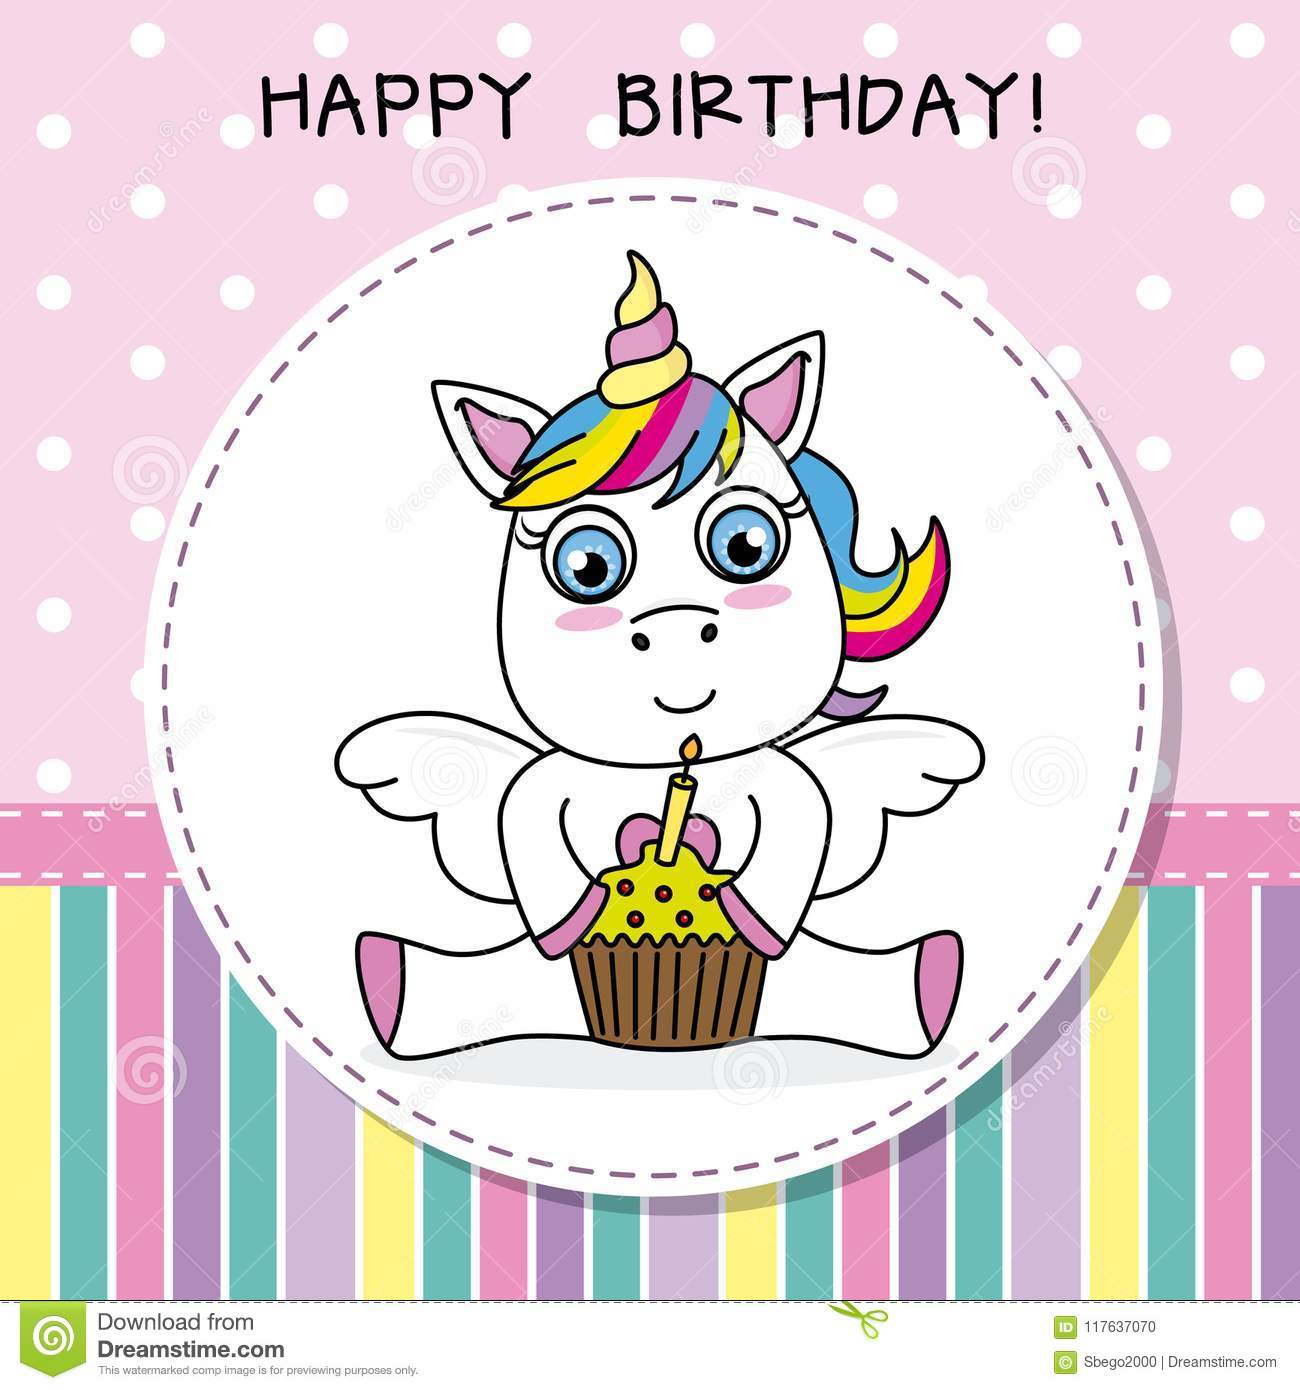 Happy Birthday Card Cute Unicorn With Cake